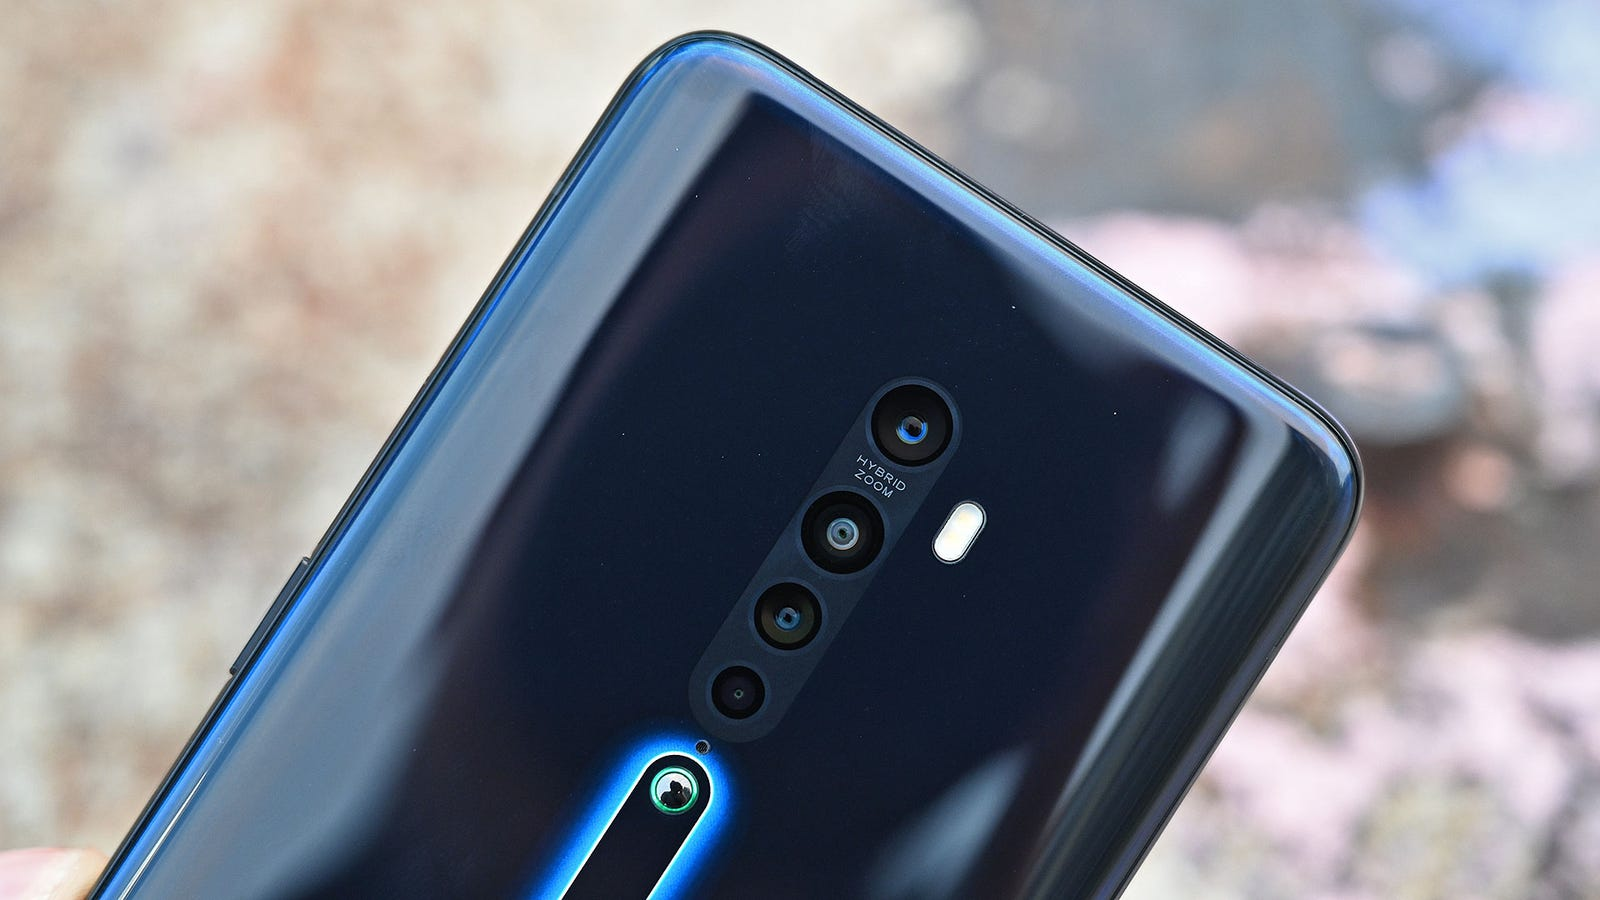 Illustration for article titled A Shark Fin and Ceramic Nipple Make the Oppo Reno 2 Wacky, Yet Sophisticated